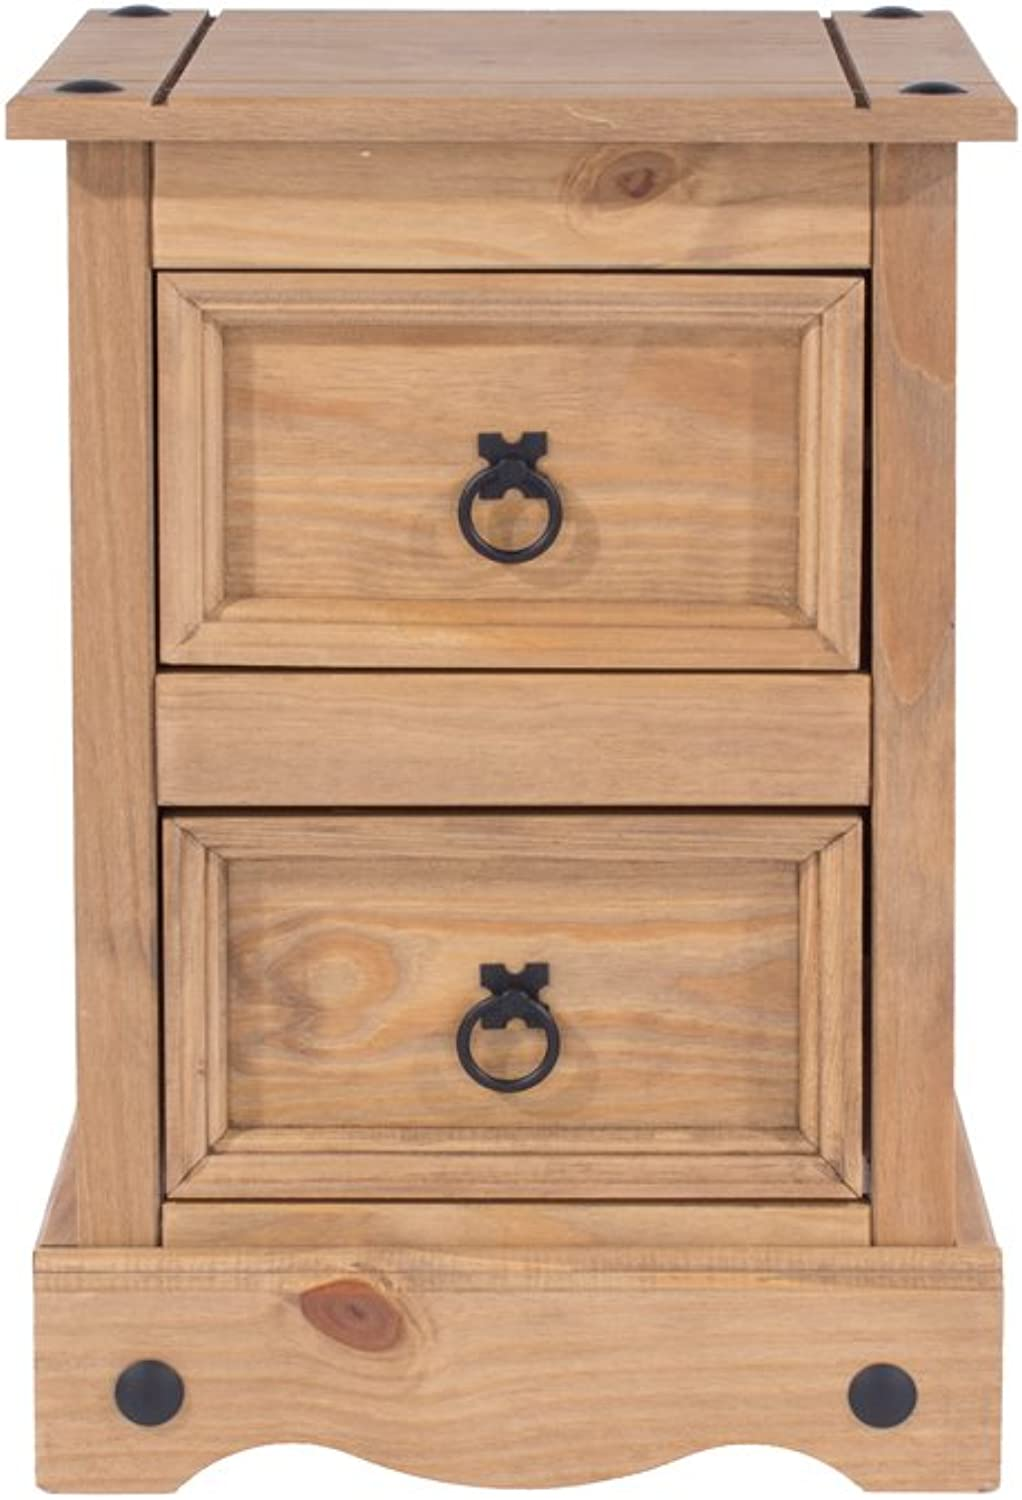 Core Products CR509 Two Drawer Petite Bedside Cabinet, Antique Wax by Core Products